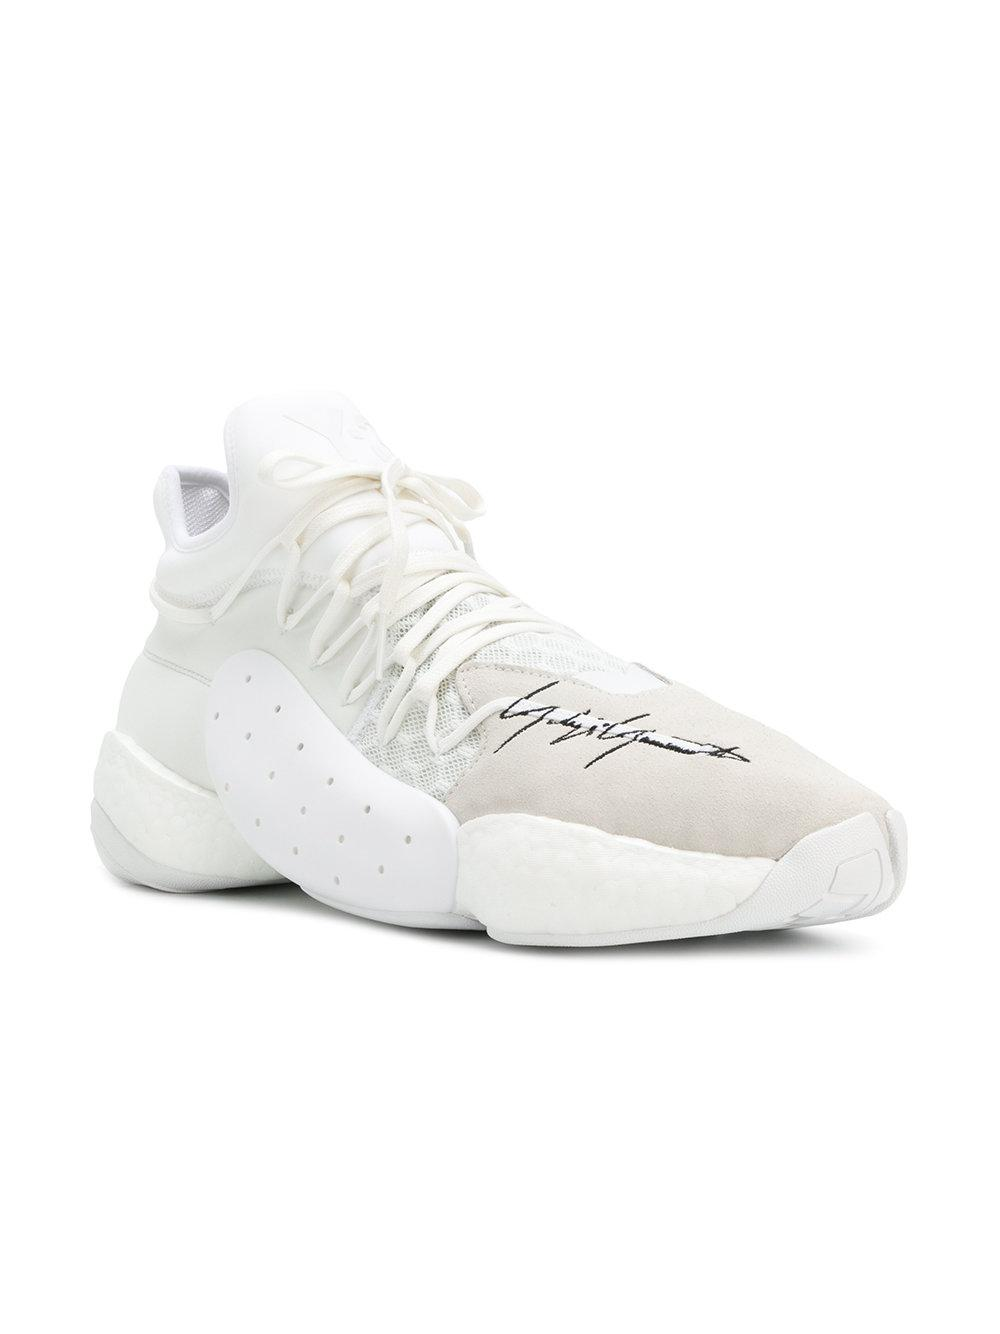 68685a7197e Y-3 X James Harden Byw Bball Sneakers in White for Men - Lyst